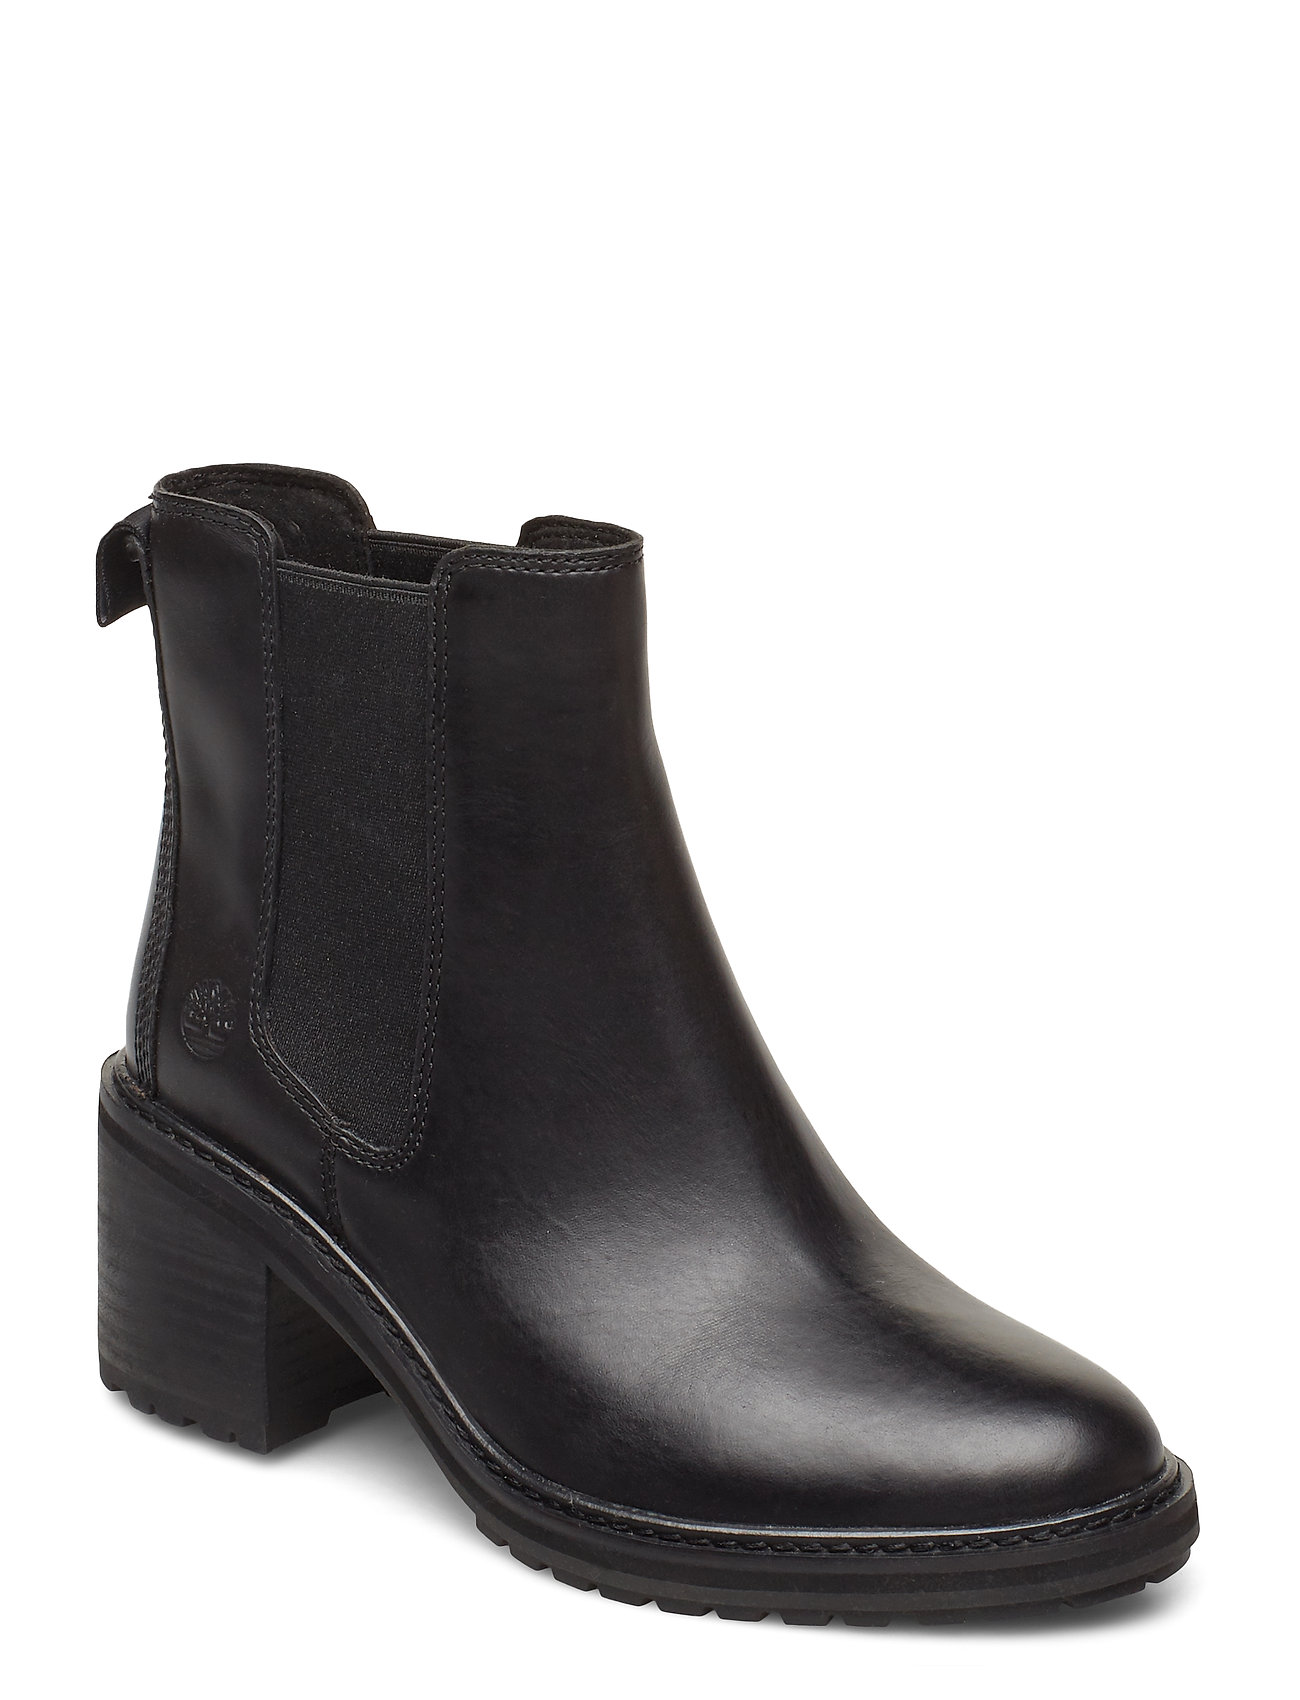 Image of Sienna High Chelsea Shoes Boots Ankle Boots Ankle Boot - Heel Sort Timberland (3434450209)